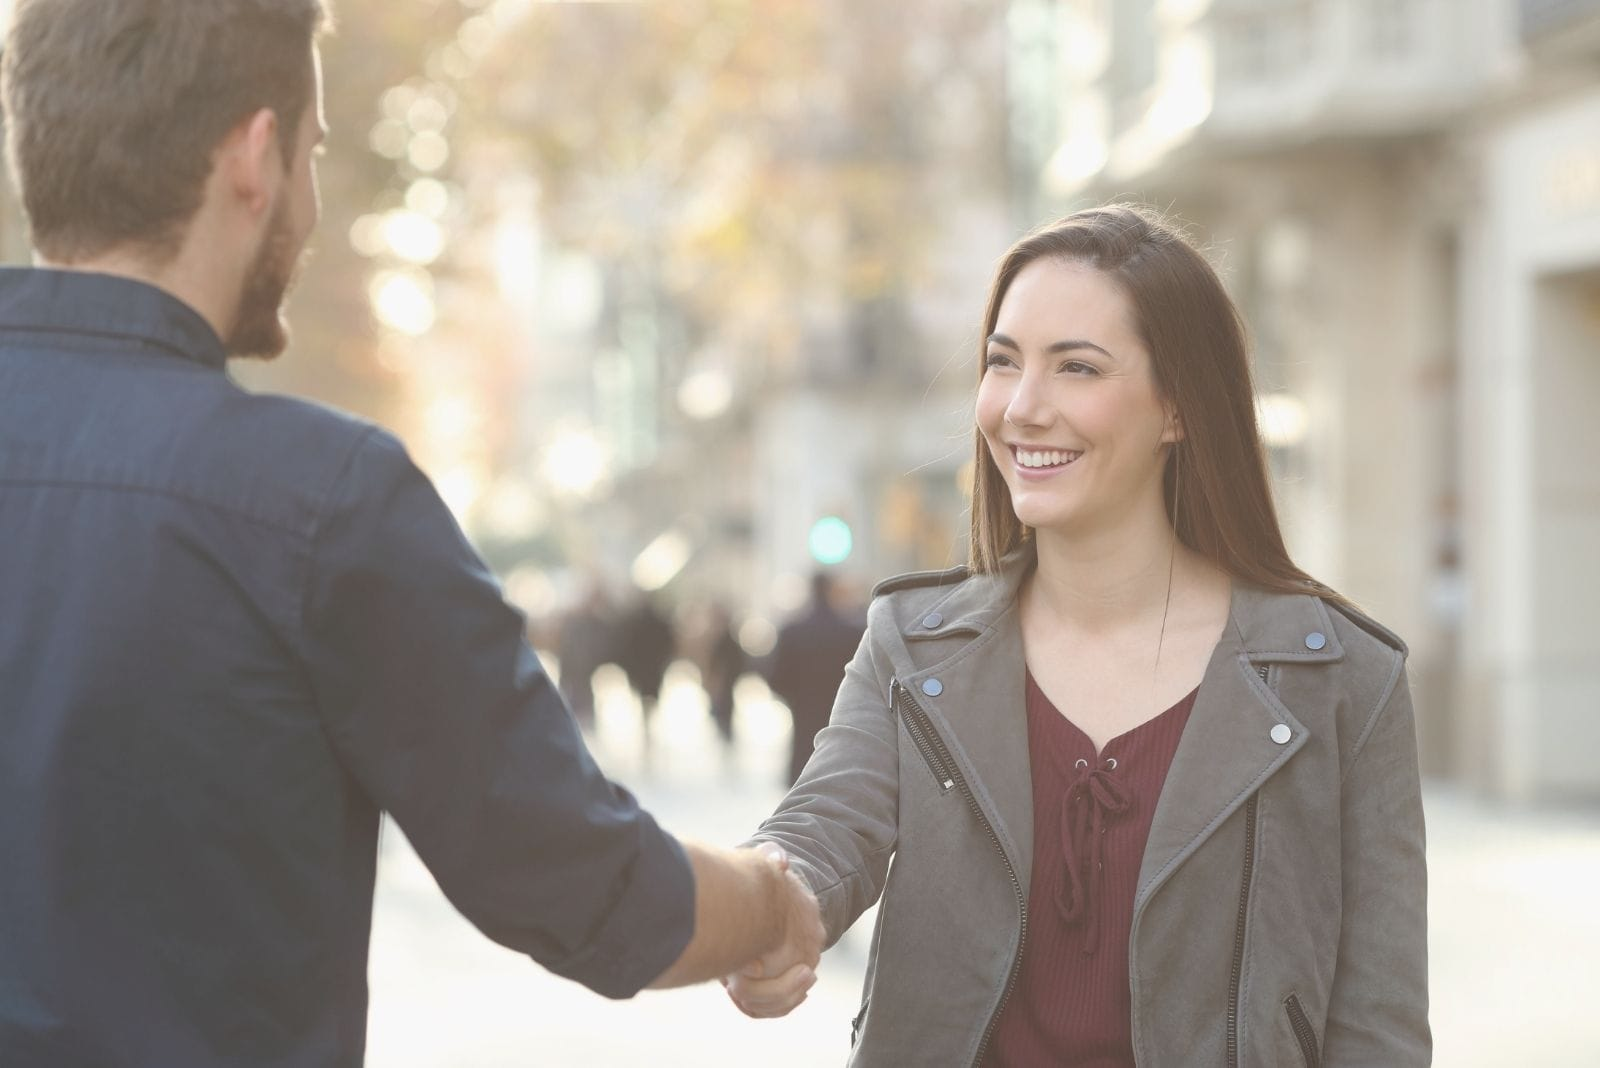 cheerful man and woman handshaking in a city street